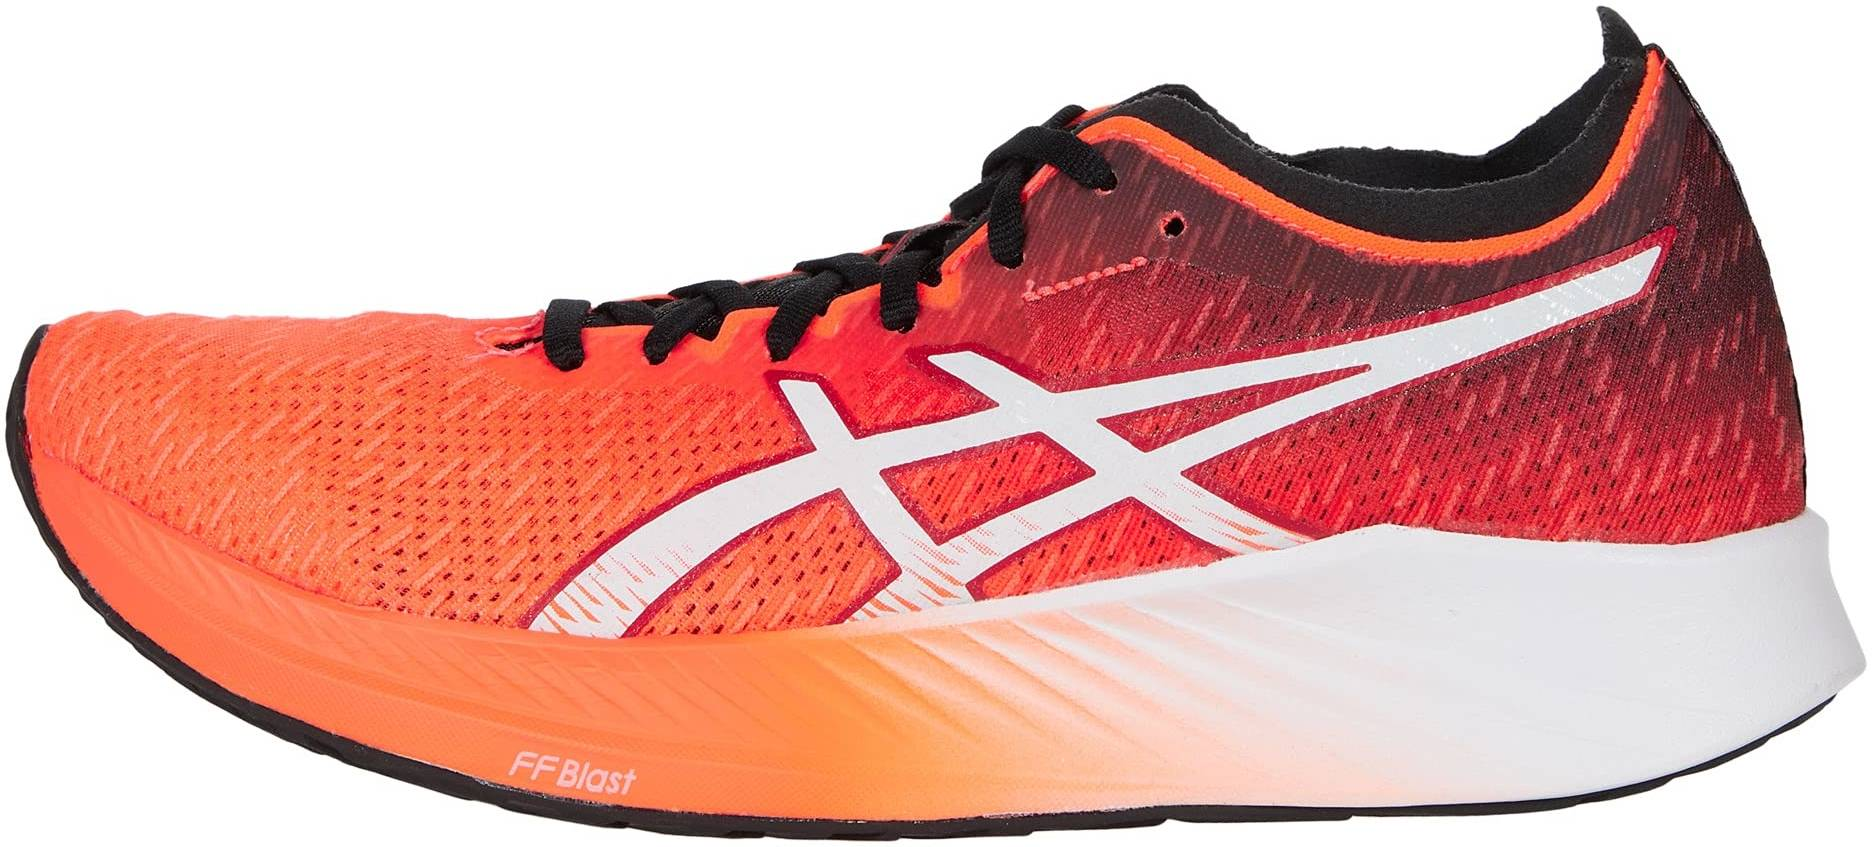 Asics Magic Speed - Lab Review 2021 - From £116 | RunRepeat